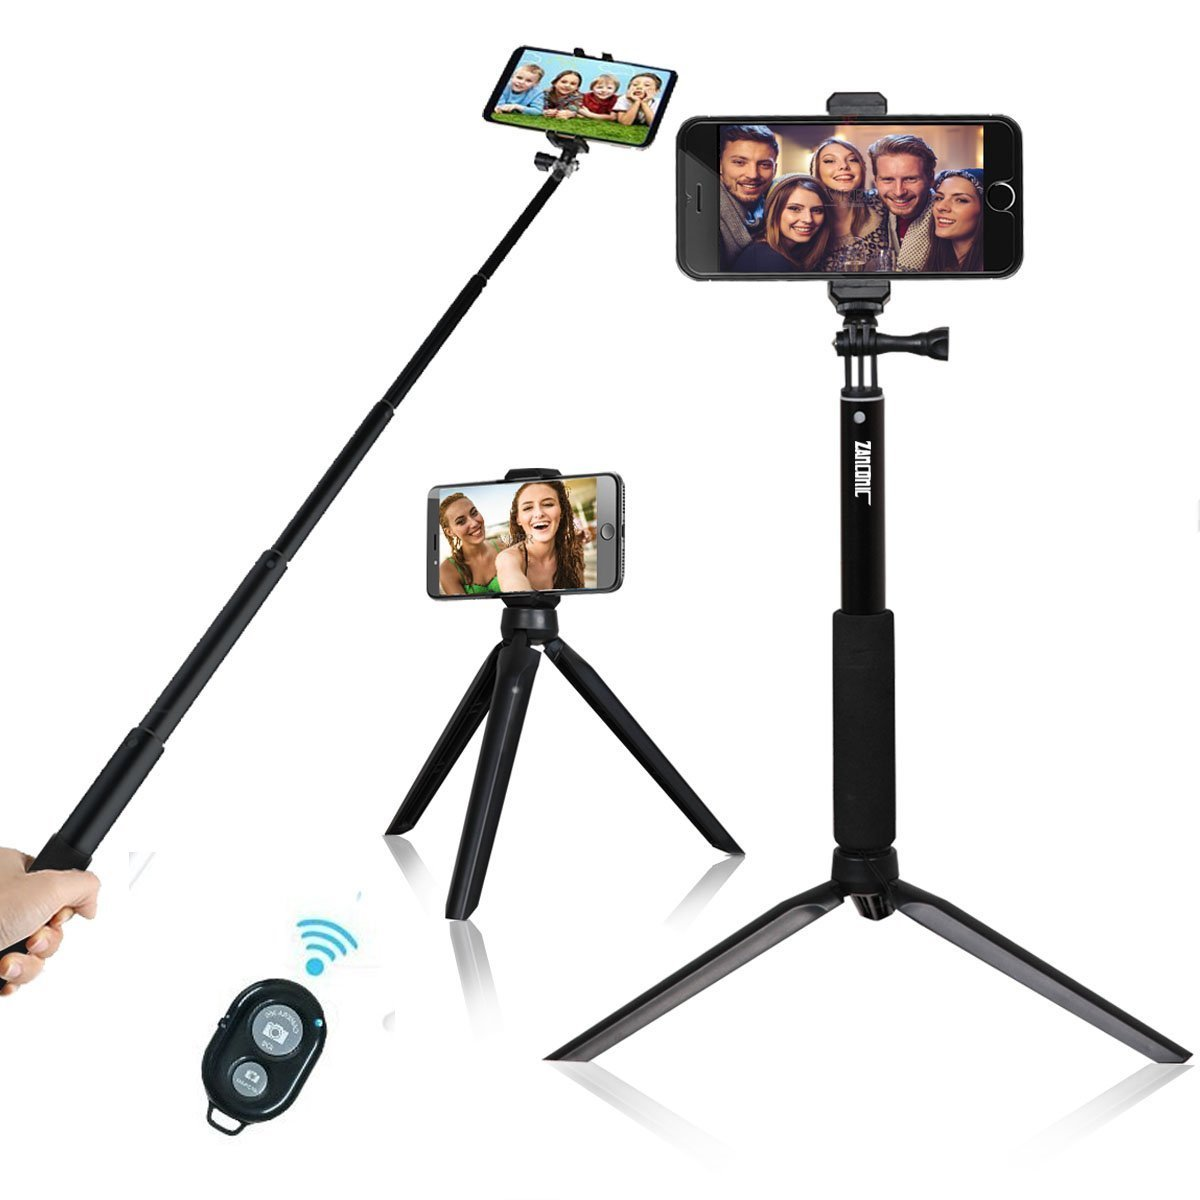 Selfie Stick with Tripod,NewRoad Extentable Selfie Stick with 360 Rotation Metal Phone Tripod and Wireless Remote for Gopro, Digital Cameras and Cell Phone(Andriod &iOS) 4326573182